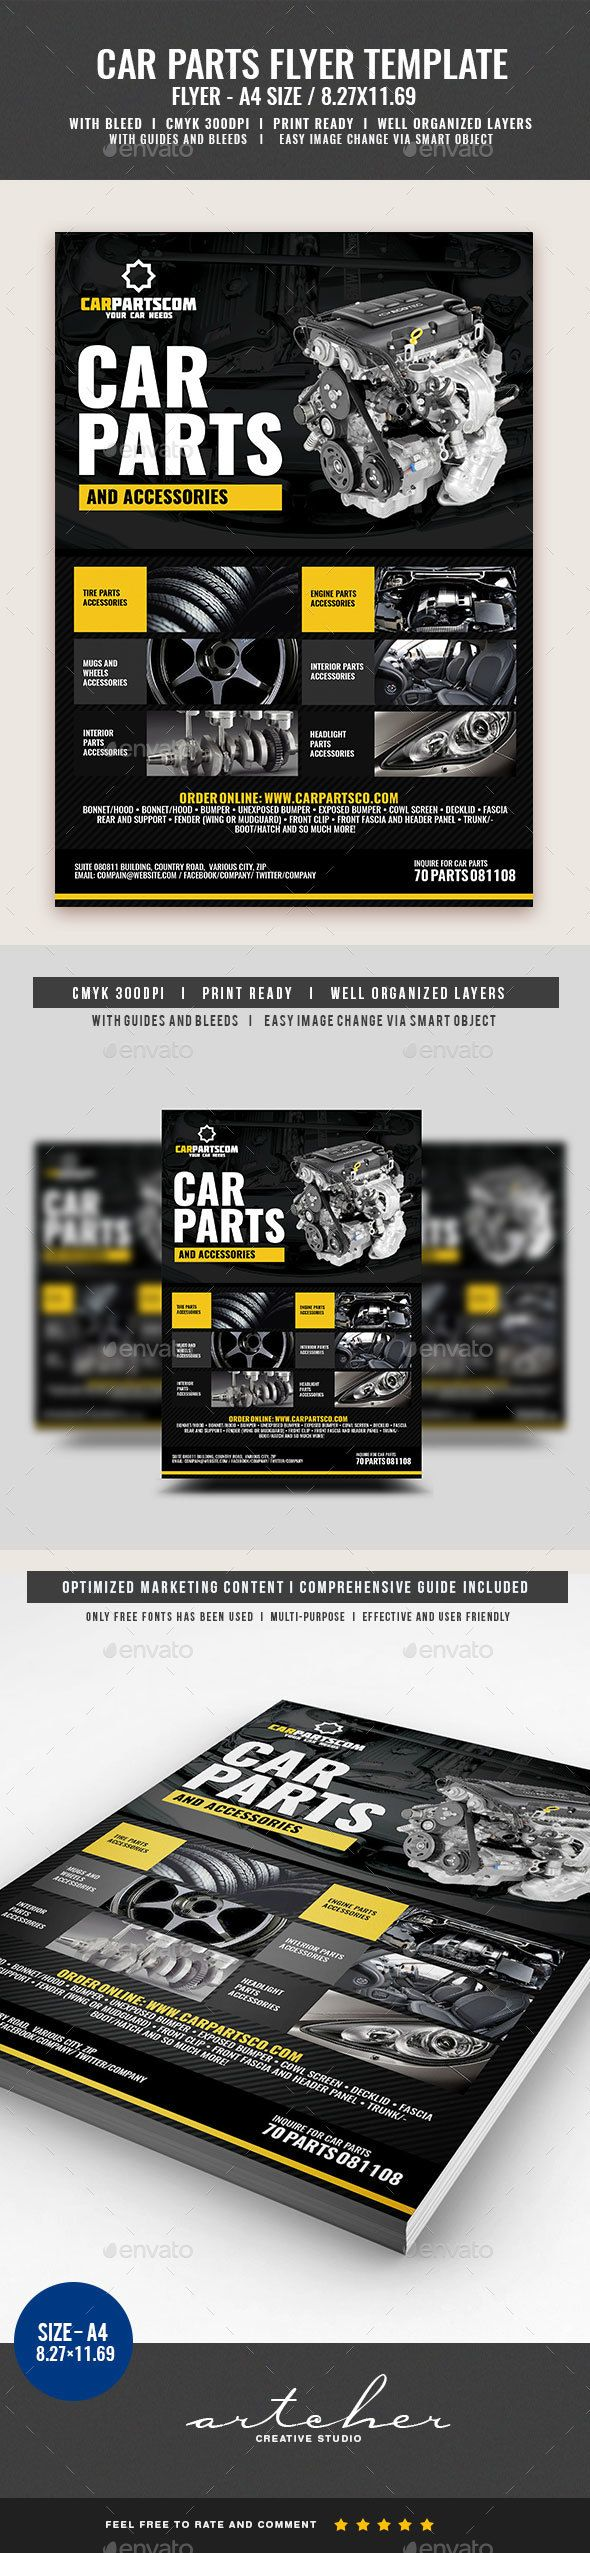 Car parts and accessories flyer